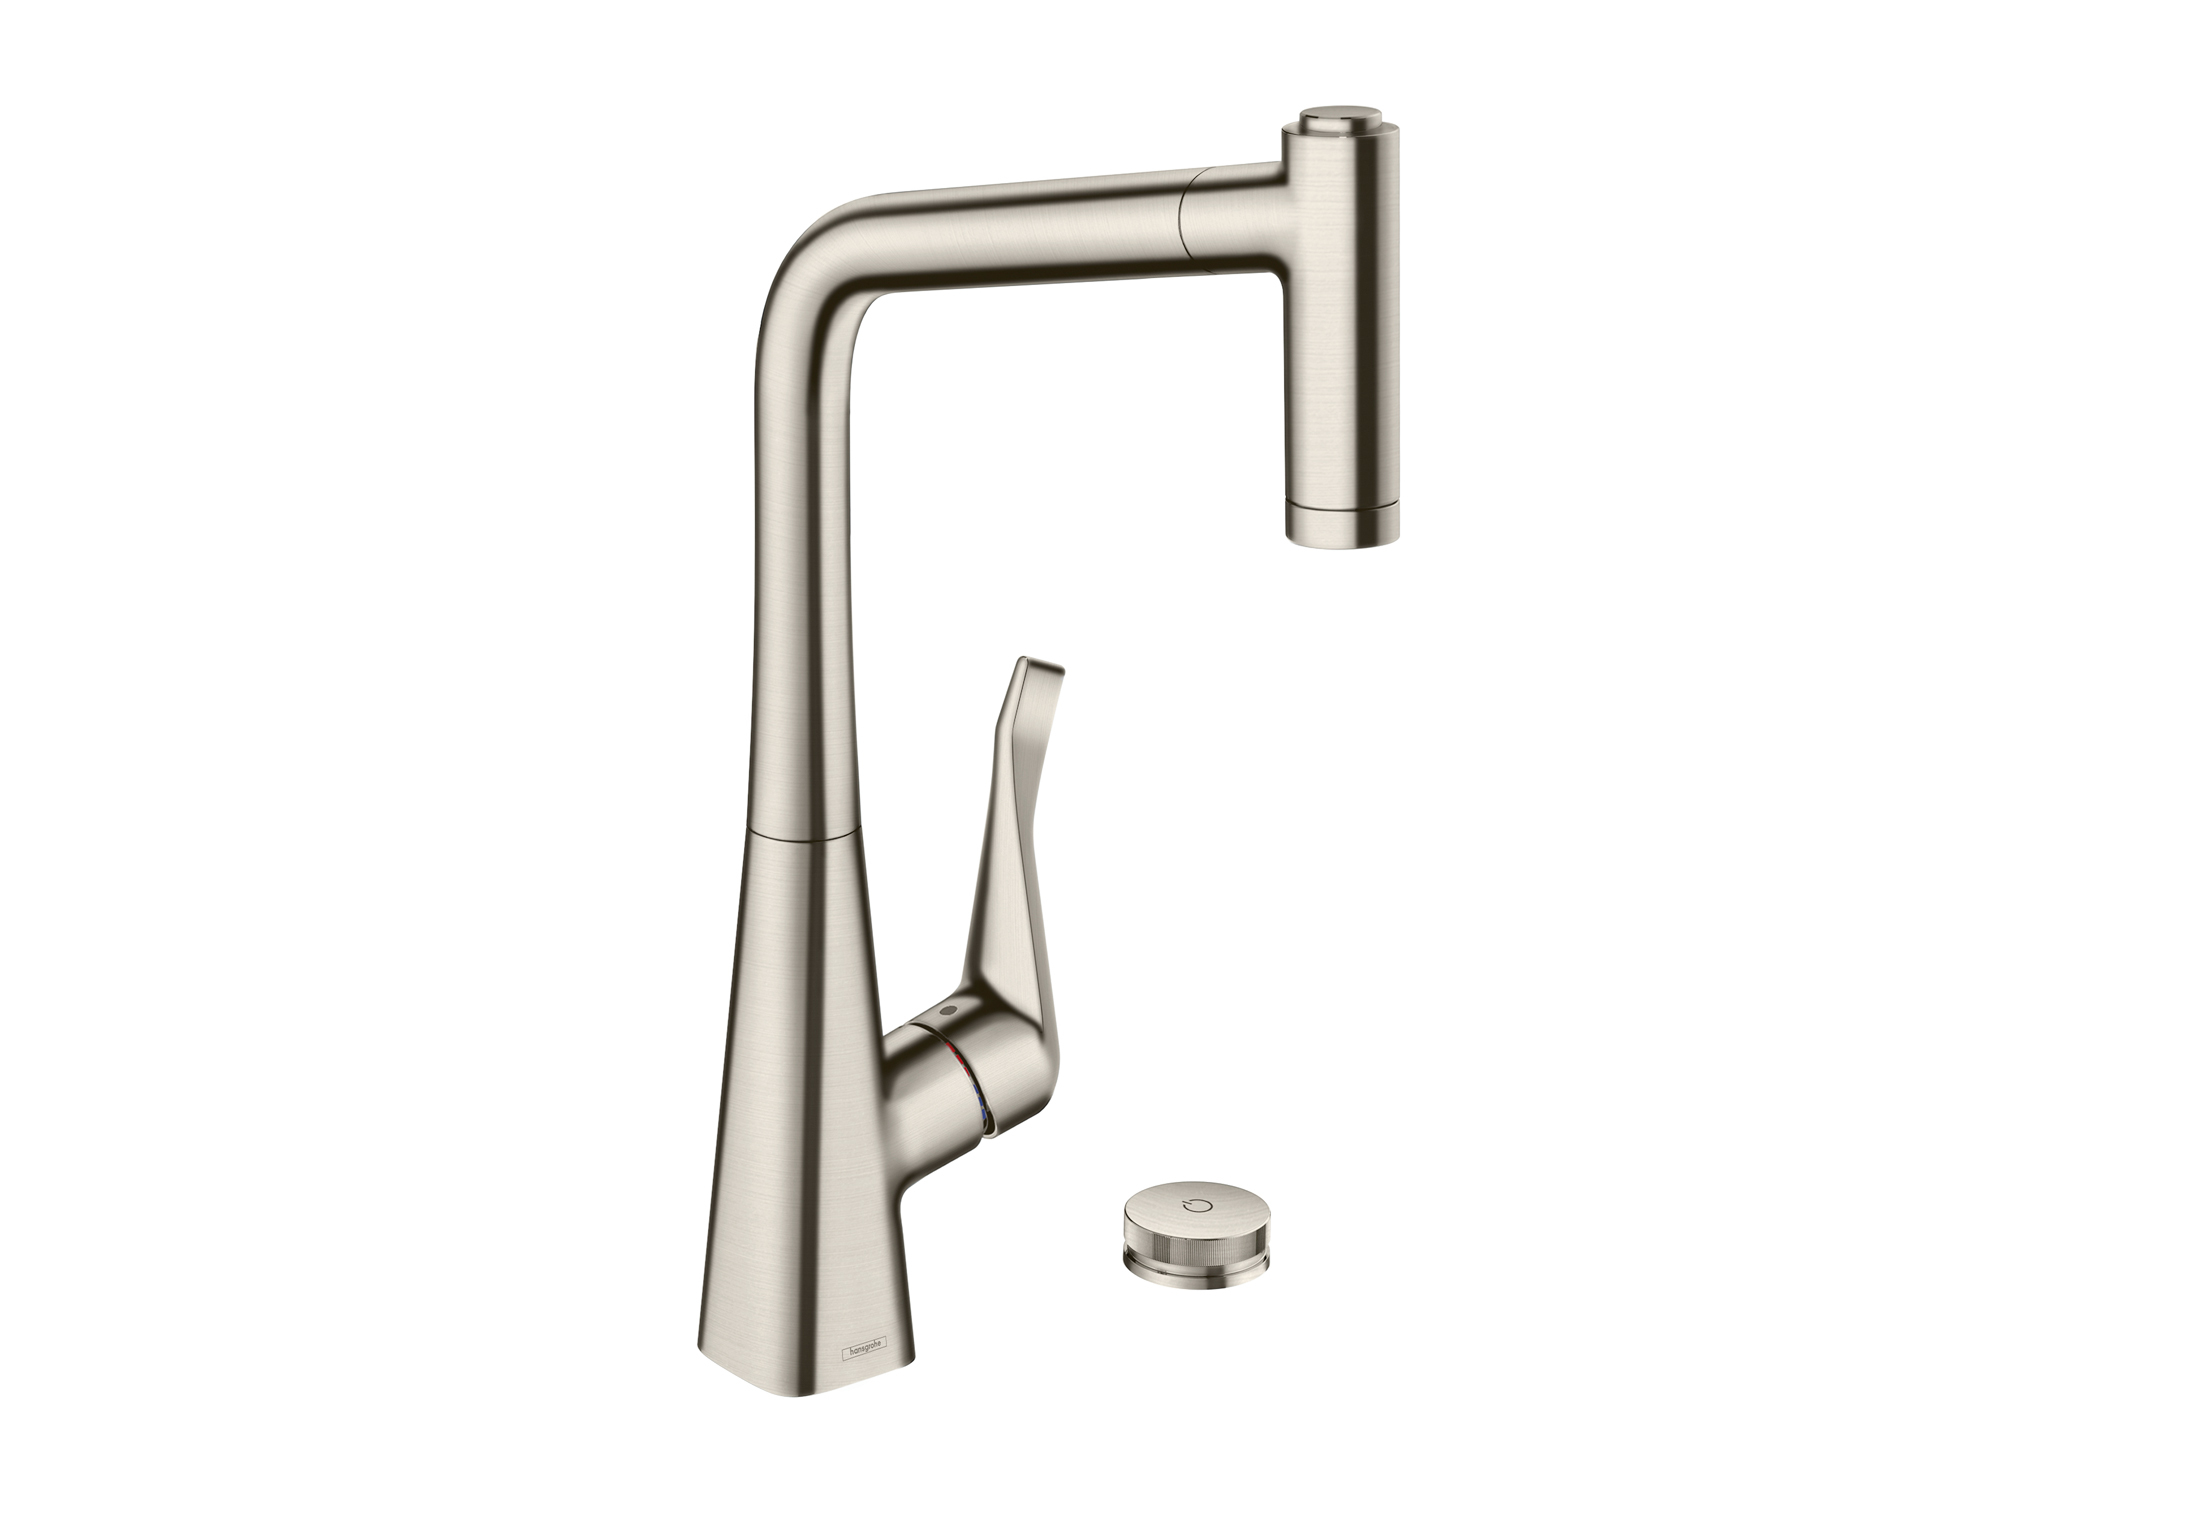 talis faucet about bathroom products magnificent lovely embellishment kitchen grohe all costco inspirational stunning c affordable hansgrohe et awesome squeaky of